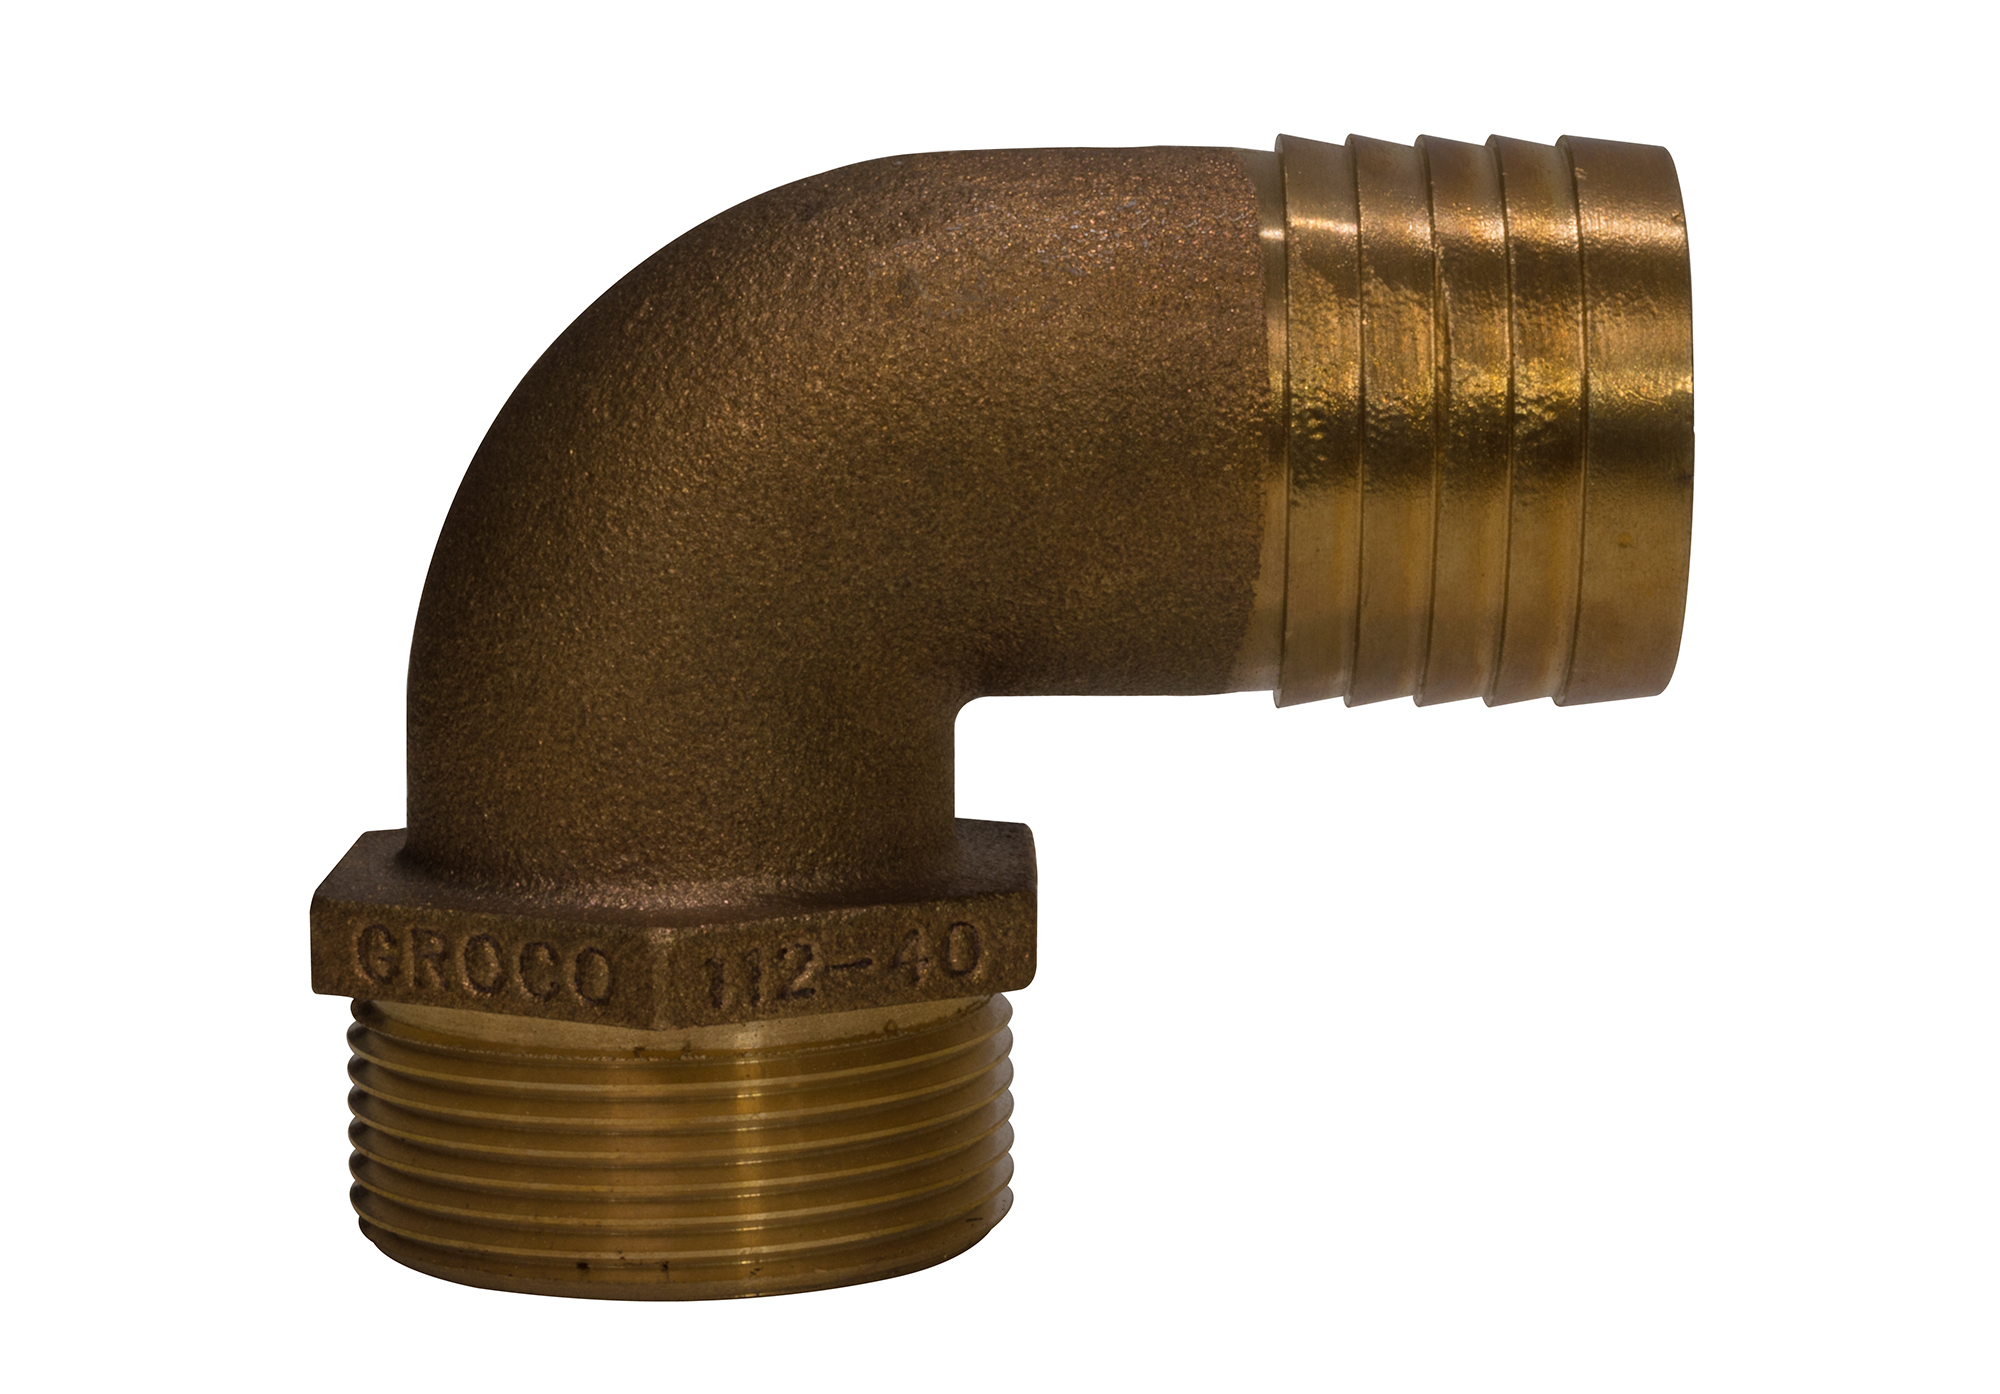 BSPP Fittings